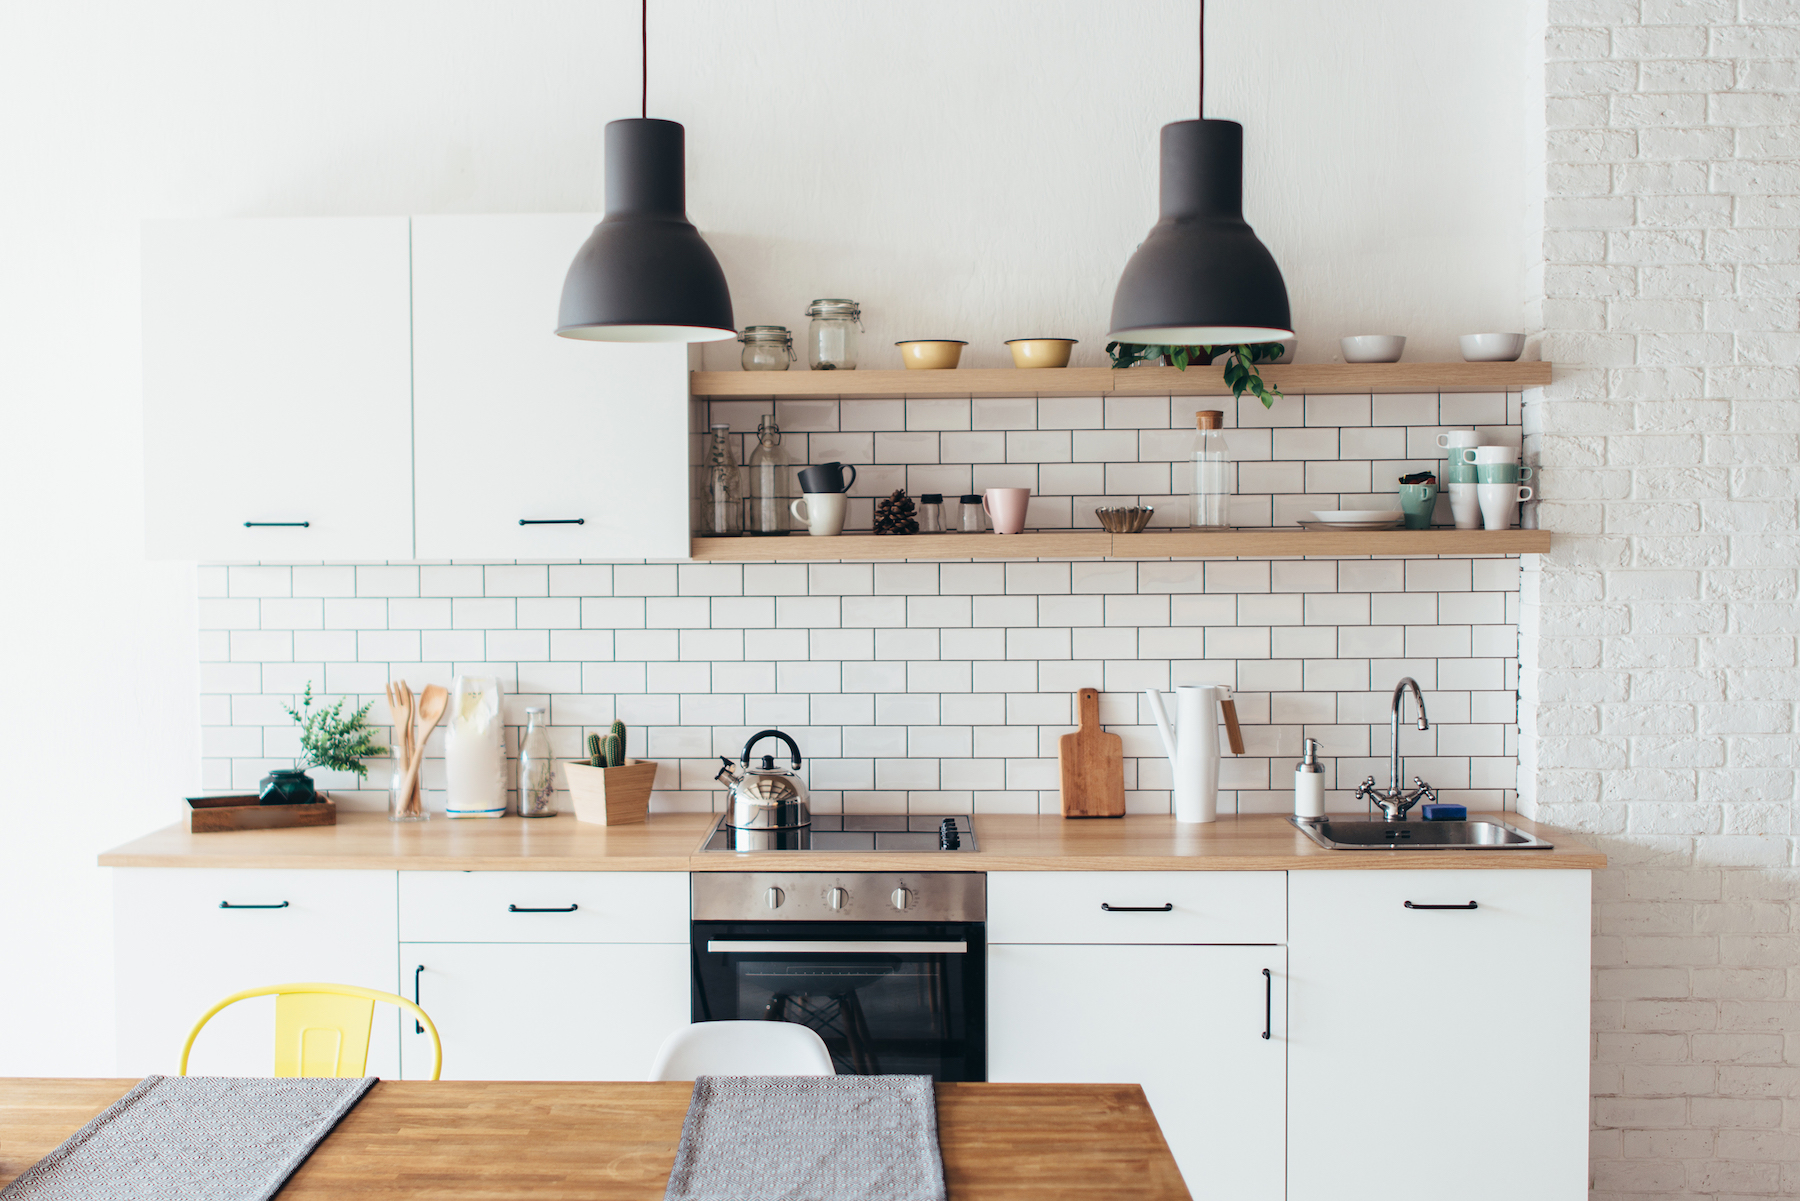 This Unexpected High-Contrast Trend Is Taking Over Kitchen Cabinets